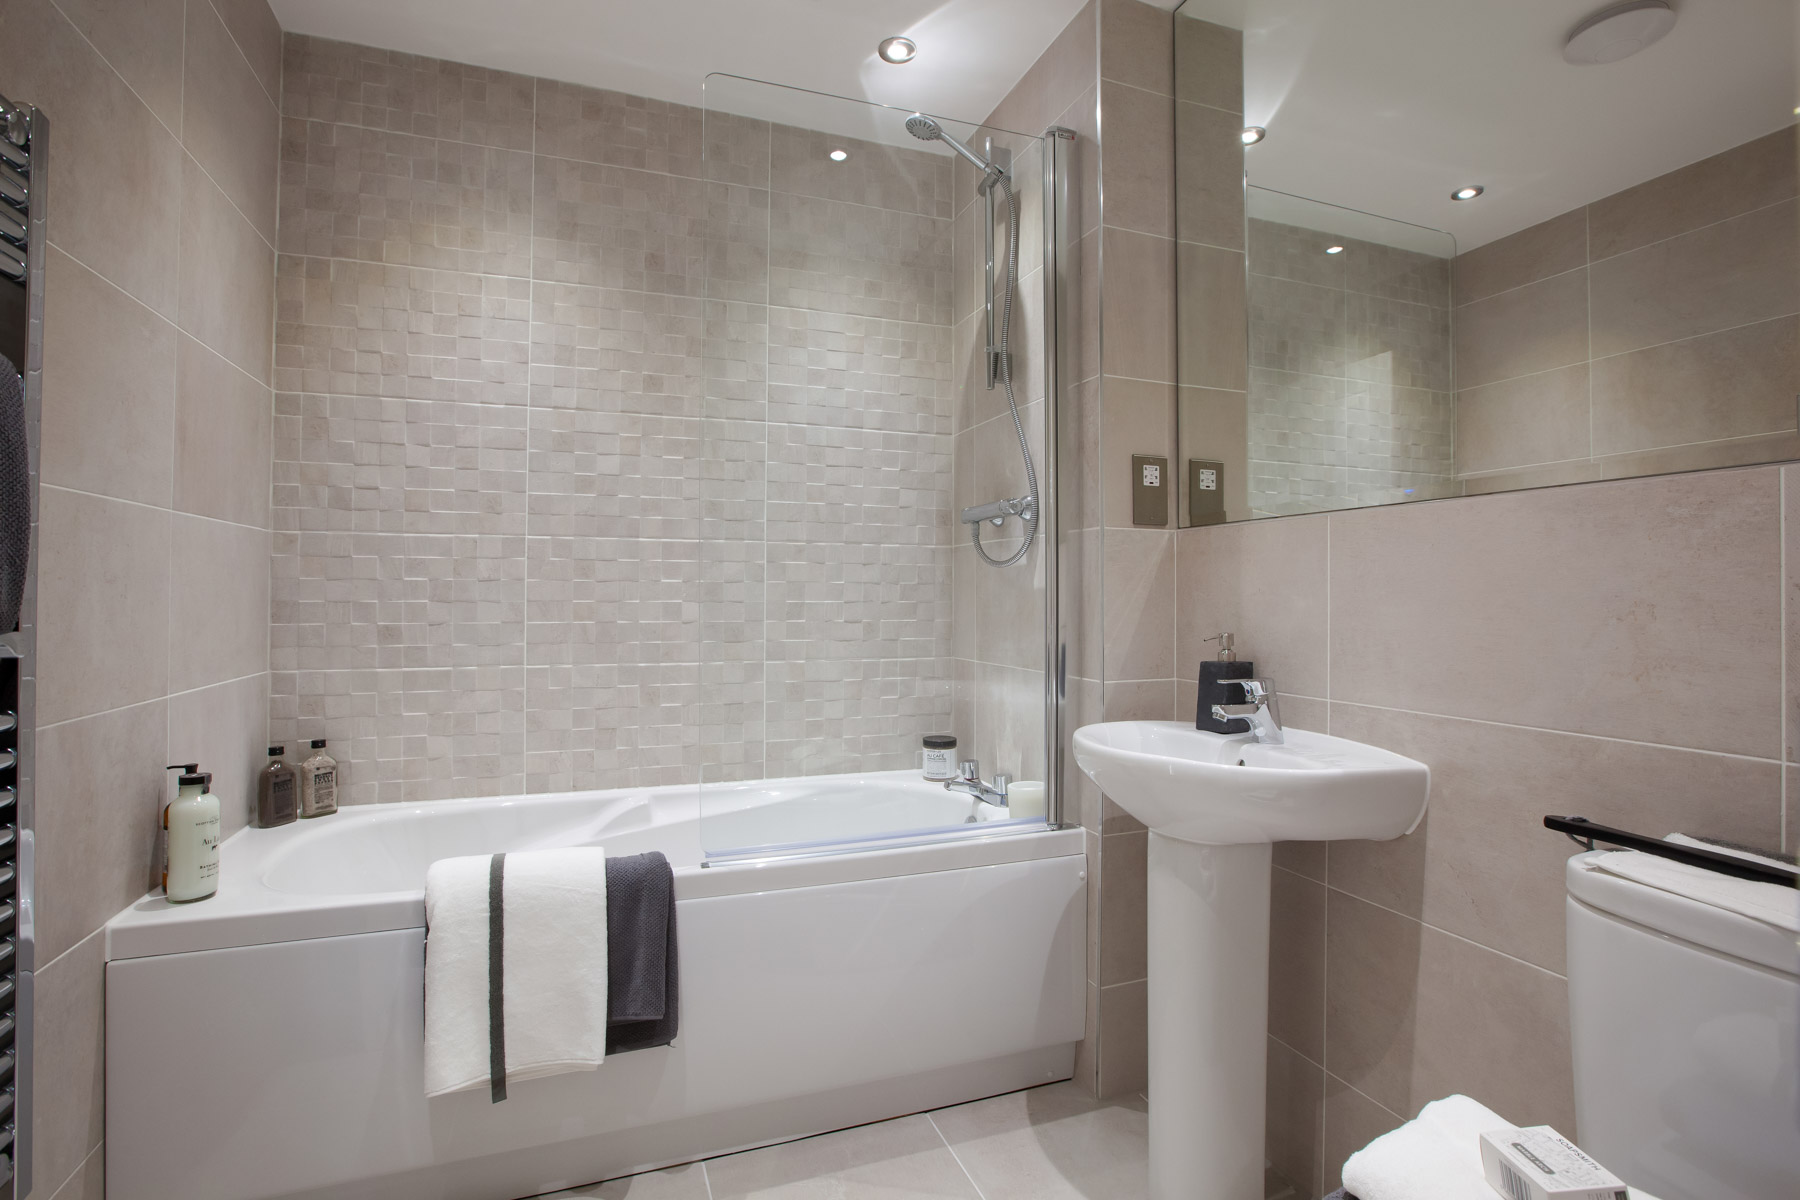 004_WV_AltonG_Bathroom